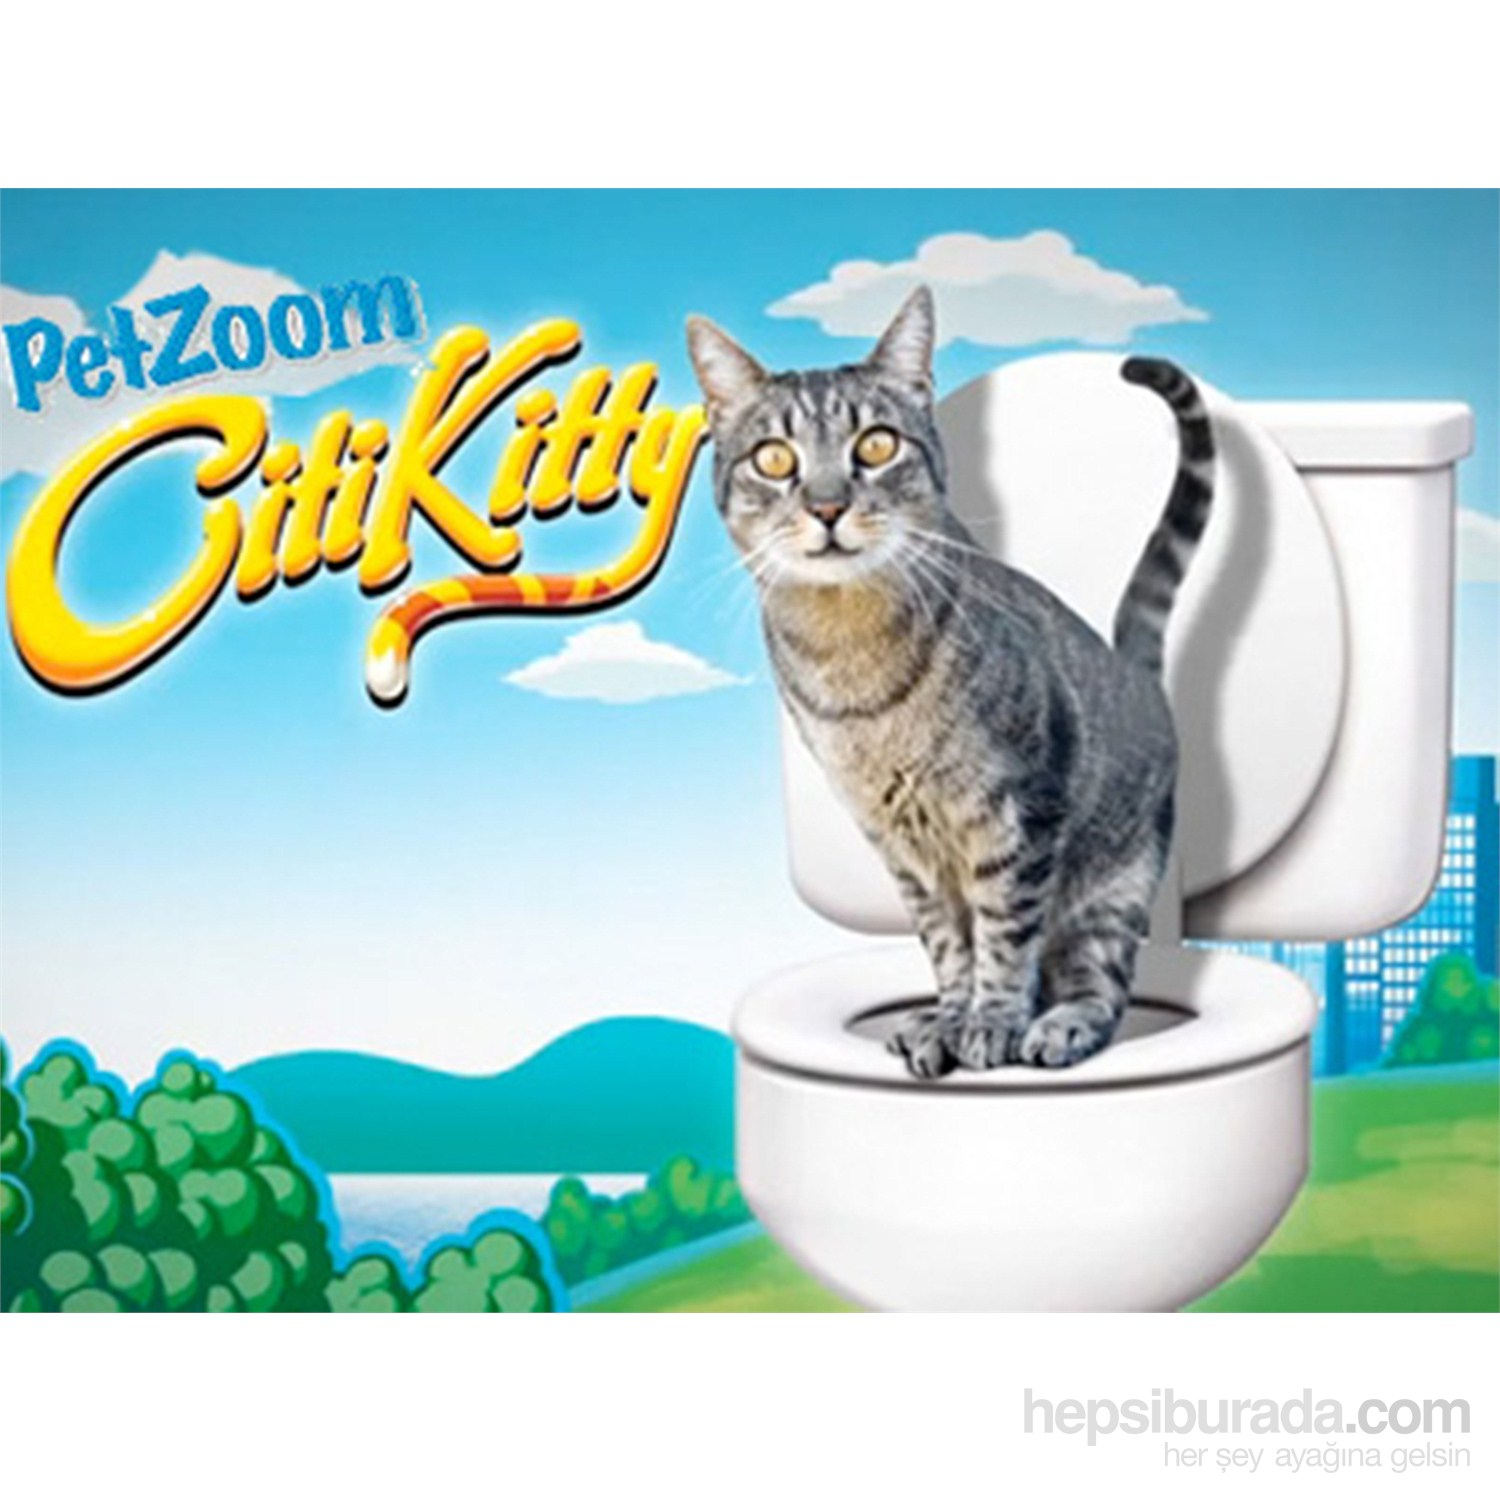 Pet Zoom Citi Kitty Kedi Tuvaleti